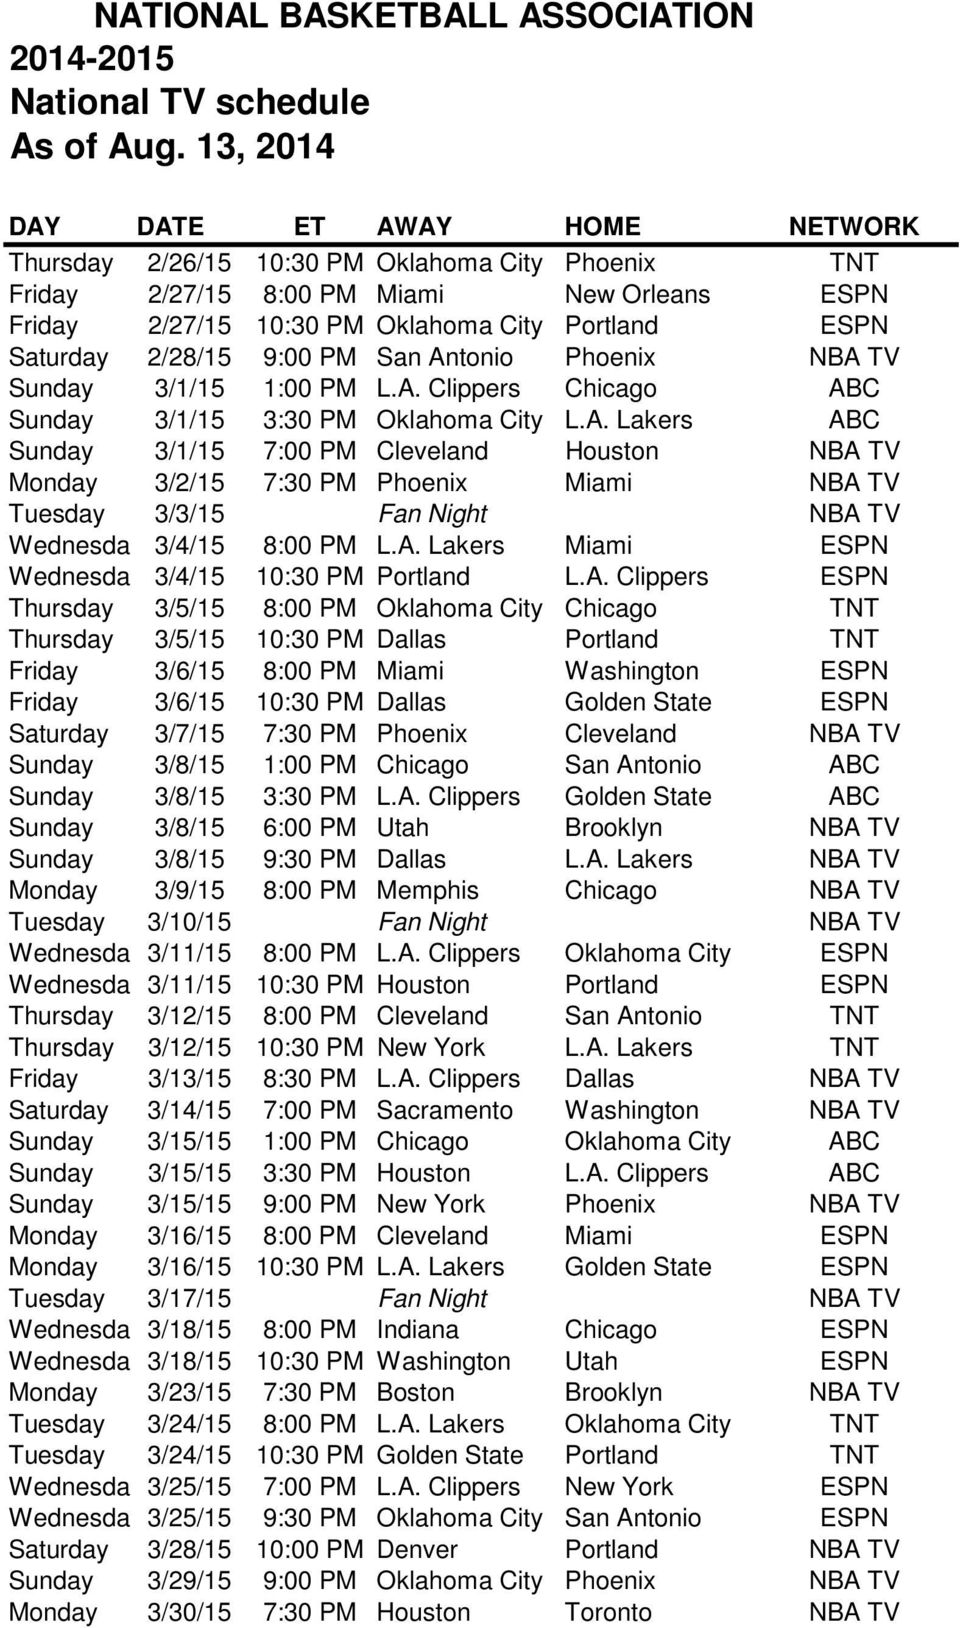 A. Lakers Miami ESPN Wednesda 3/4/15 10:30 PM Portland L.A. Clippers ESPN Thursday 3/5/15 8:00 PM Oklahoma City Chicago TNT Thursday 3/5/15 10:30 PM Dallas Portland TNT Friday 3/6/15 8:00 PM Miami